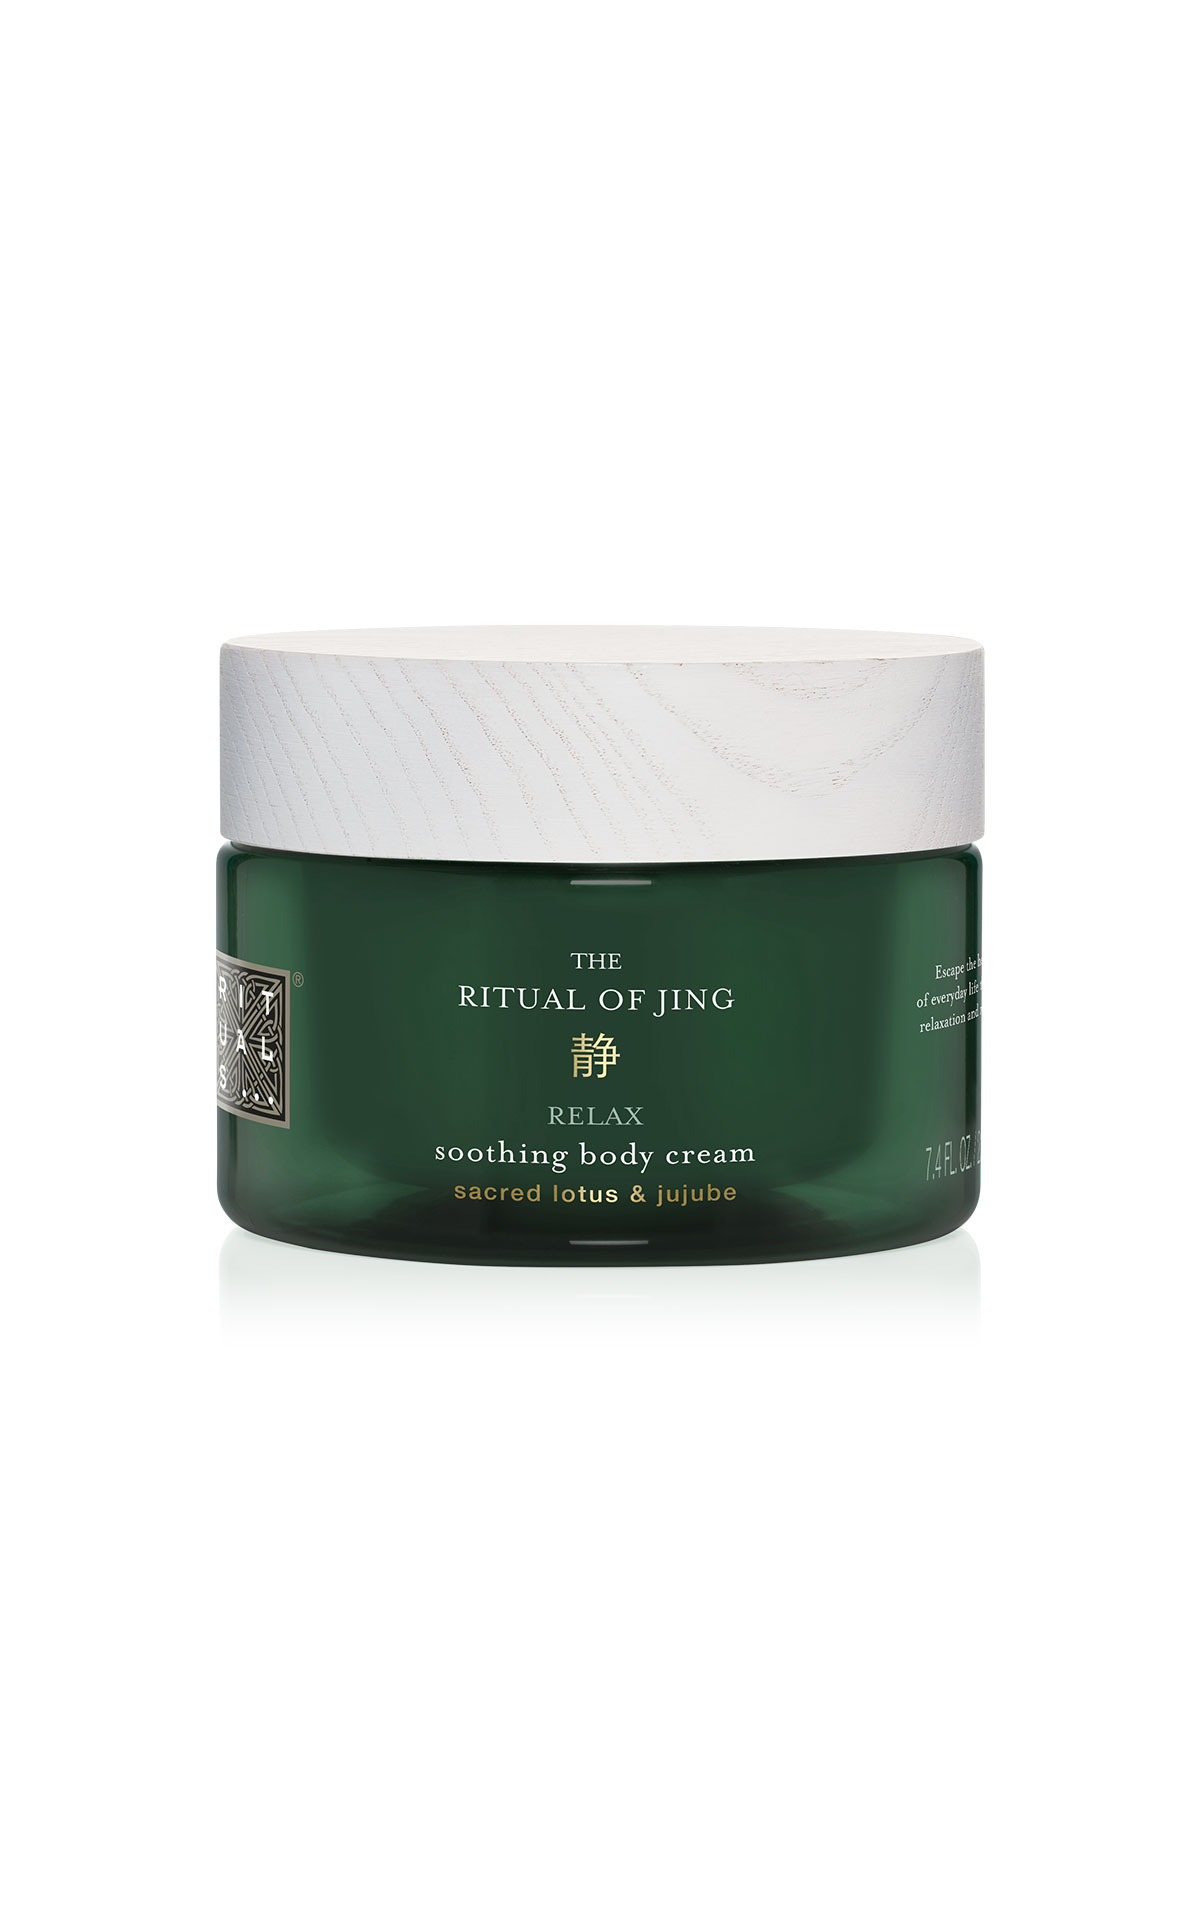 Rituals The ritual of jing body cream from Bicester Village